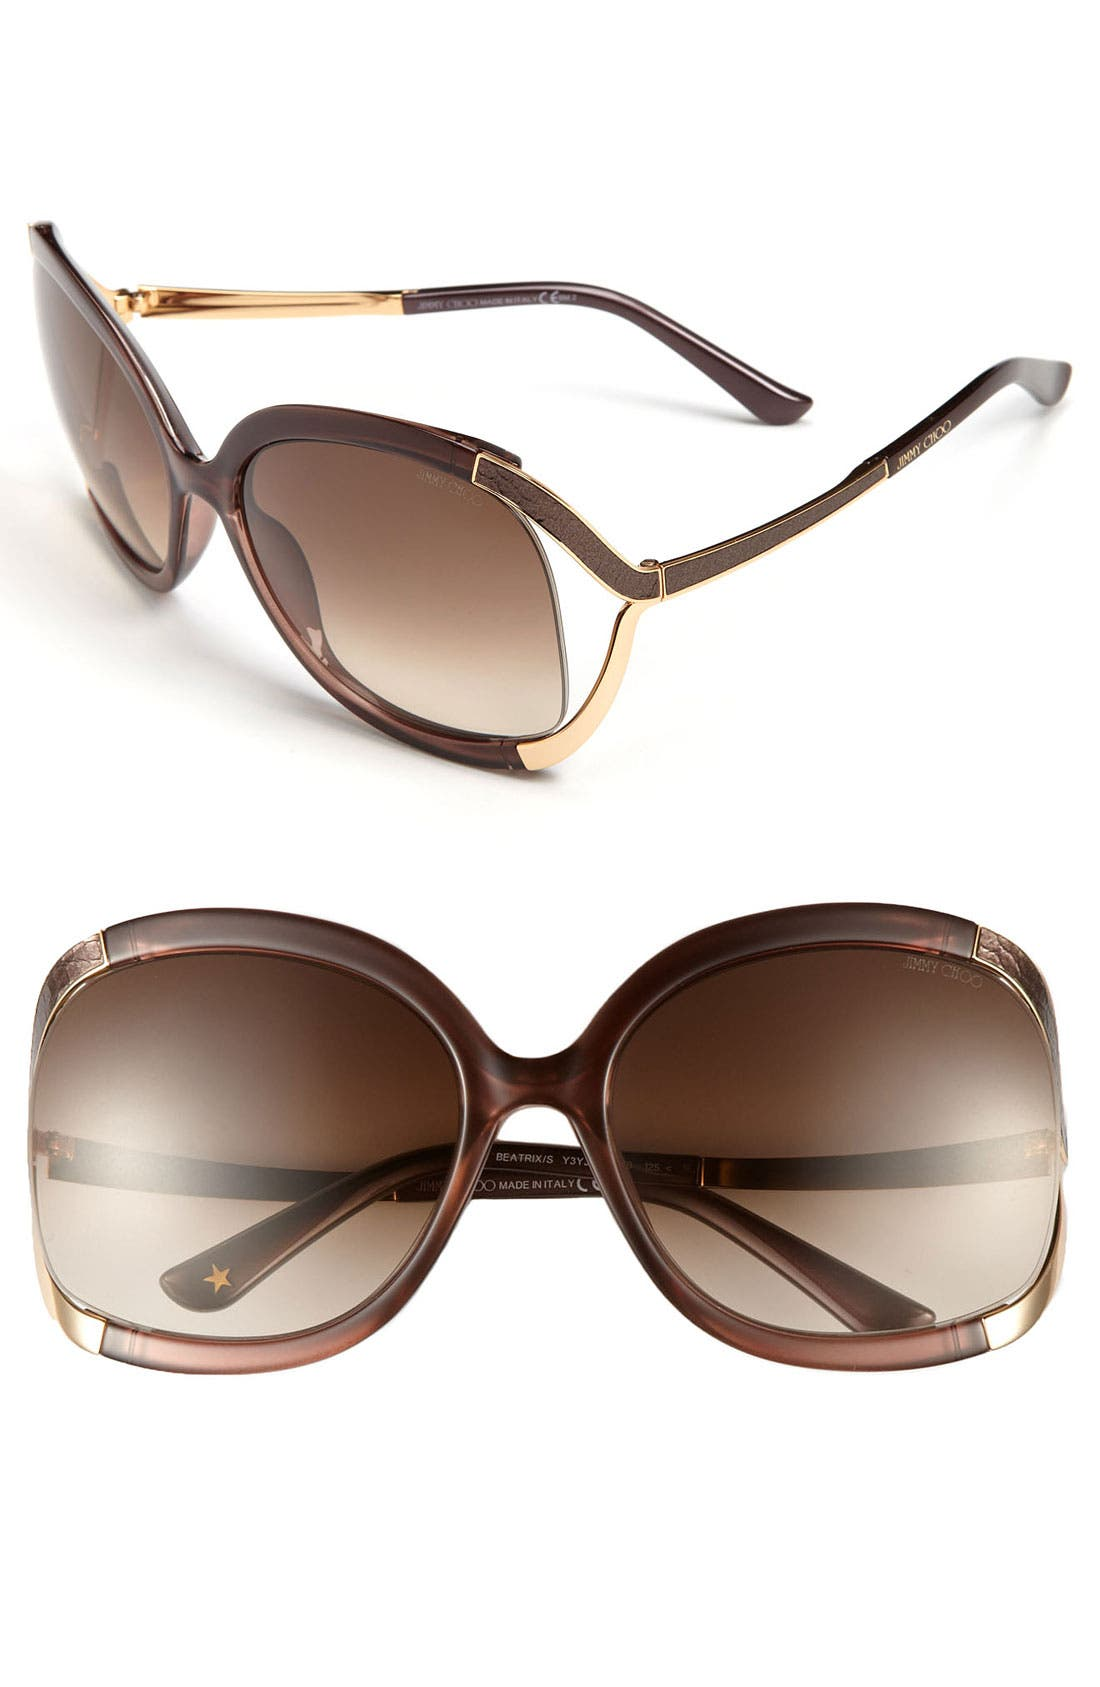 Main Image - Jimmy Choo 'Beatrix' 61mm Sunglasses